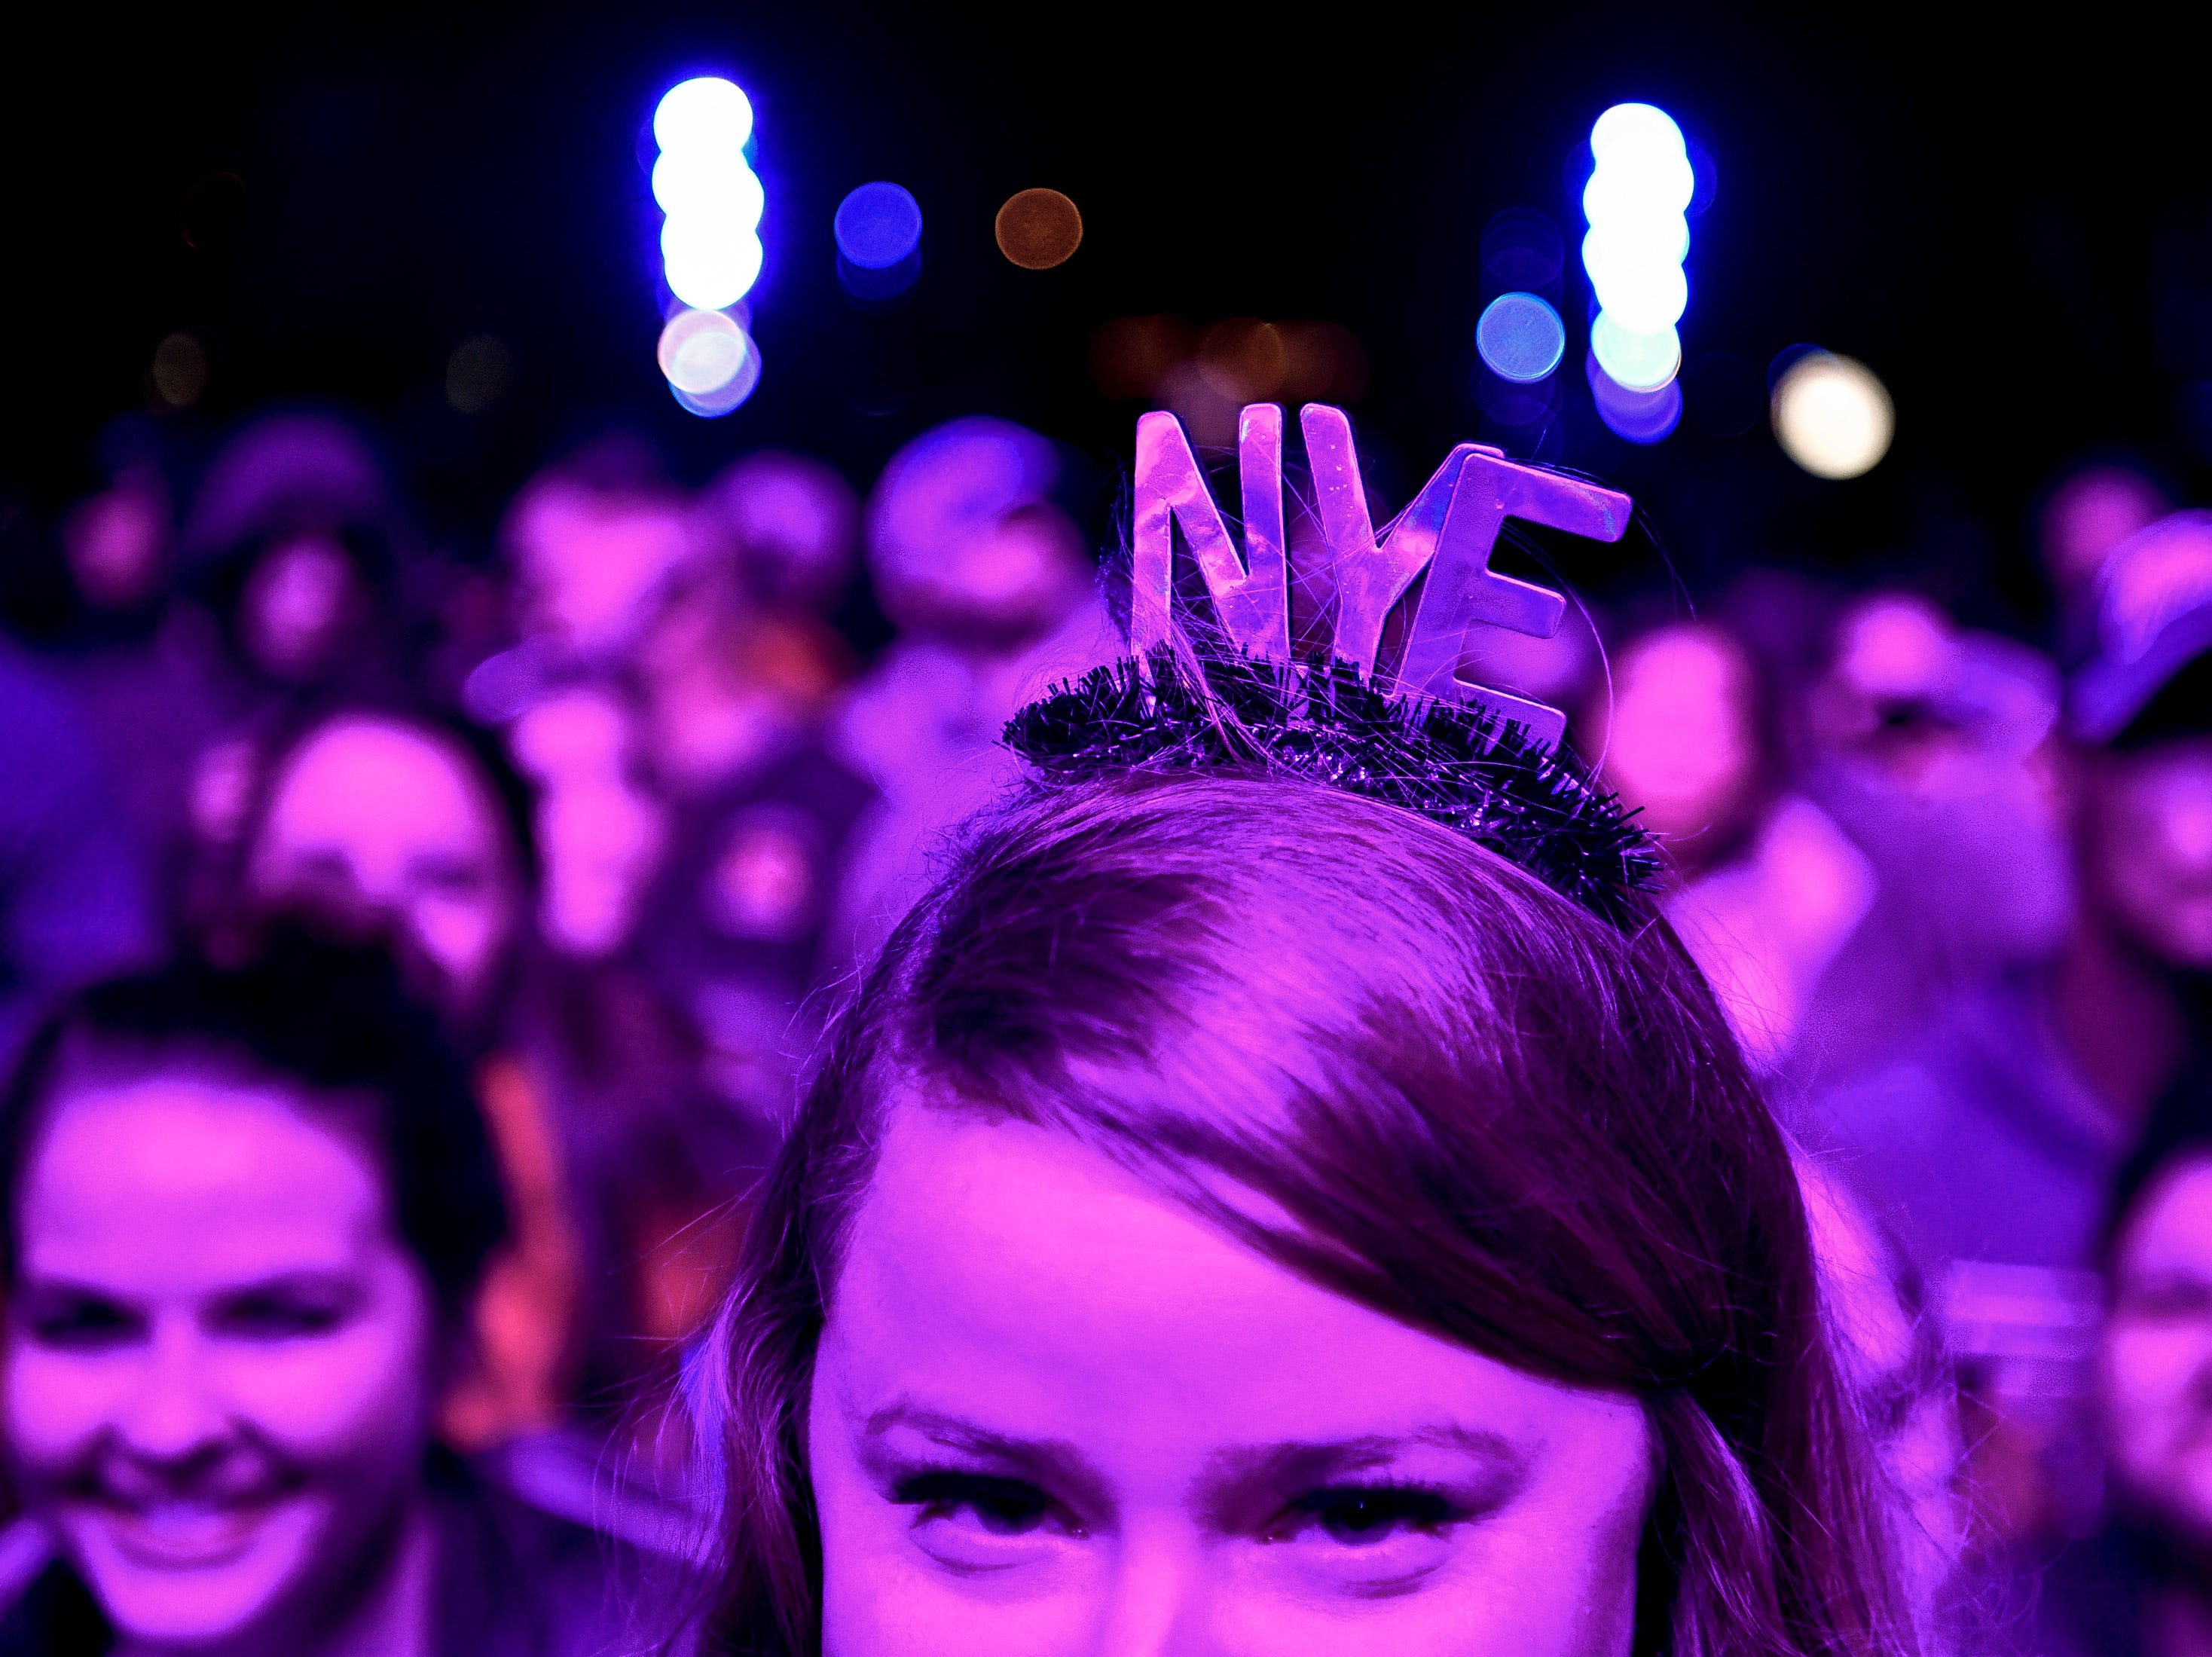 Cecilia Dubuisson, of Memphis, Tenn., watches DJ Robert Luke perform during the Jack Daniel's Music City Midnight: New Year's Eve event at Bicentennial Capitol Mall State Park in Nashville, Tenn., Monday, Dec. 31, 2018.